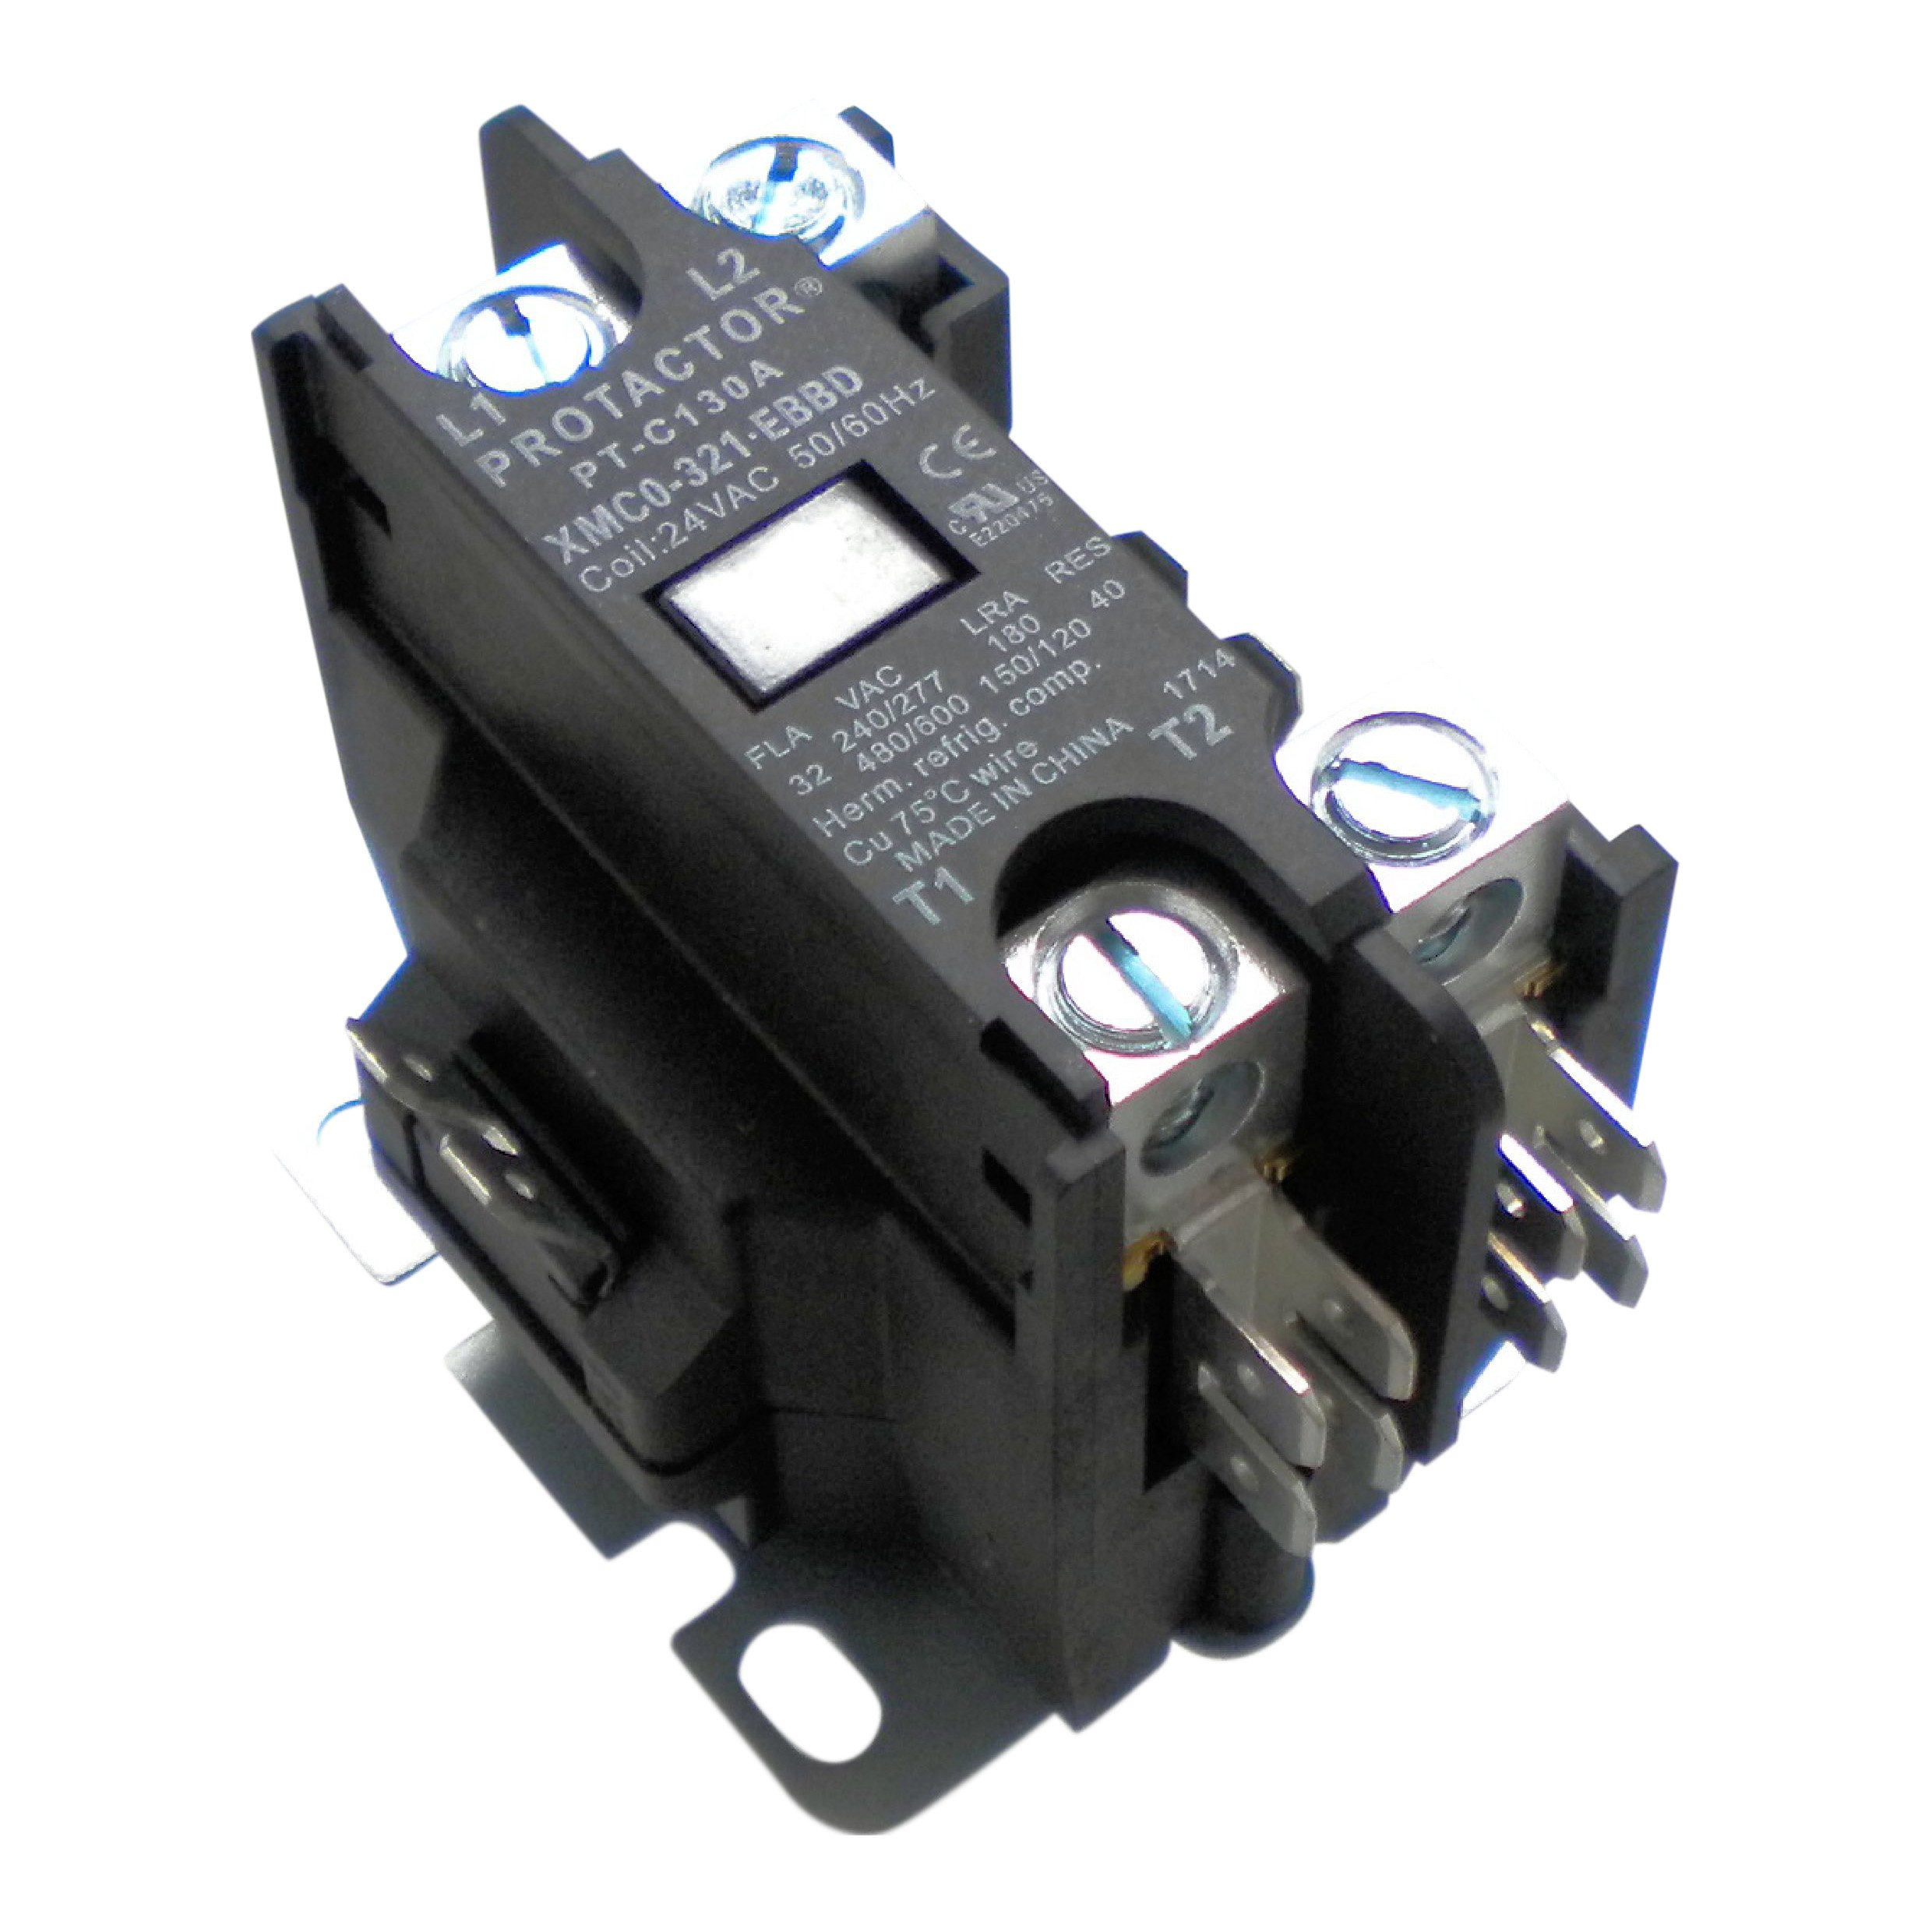 hvac contactor amazon comprotactor 1 pole 32 amp heavy duty ac contactor replaces virtually all residential 1 pole models